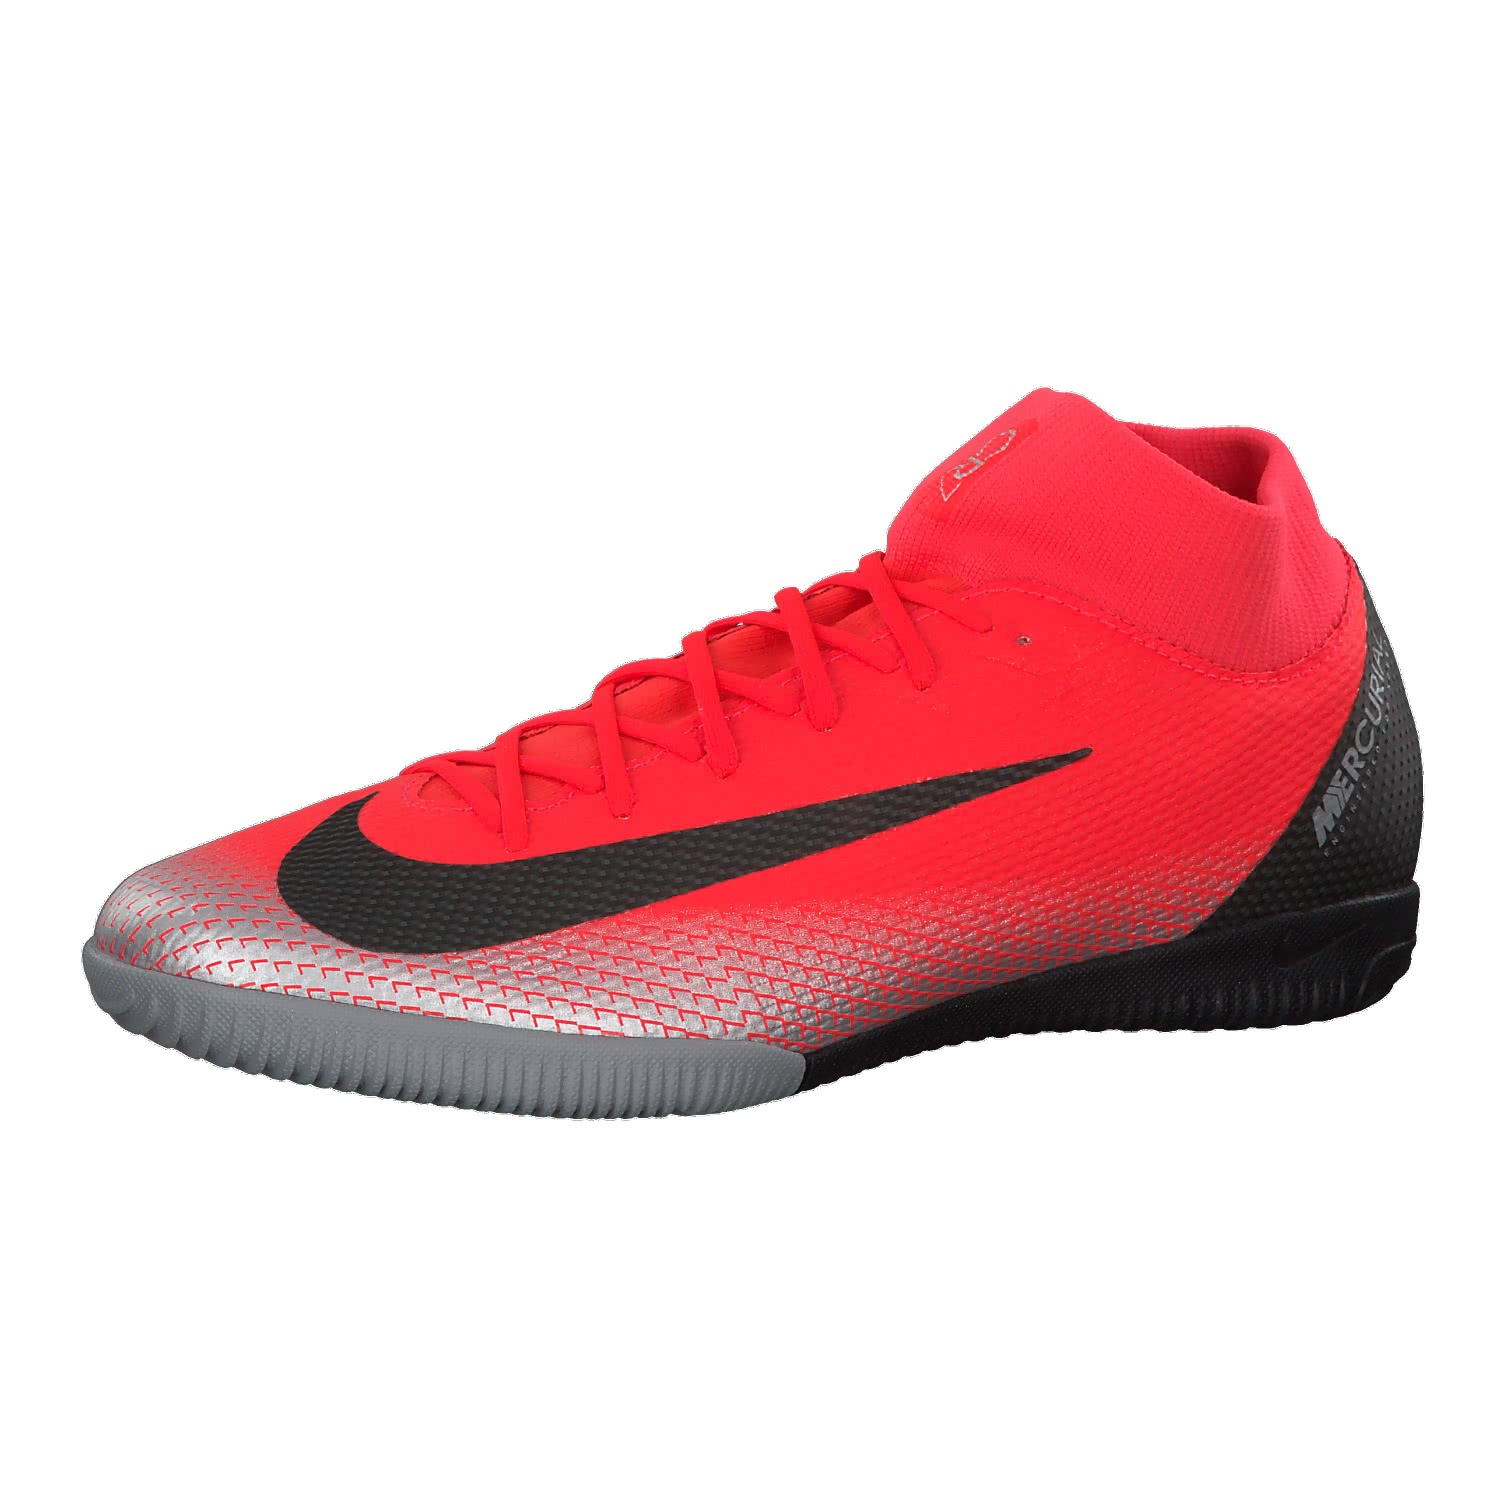 free delivery coupon codes best sell Nike Herren Fussballschuhe Mercurial SuperflyX VI Academy ...